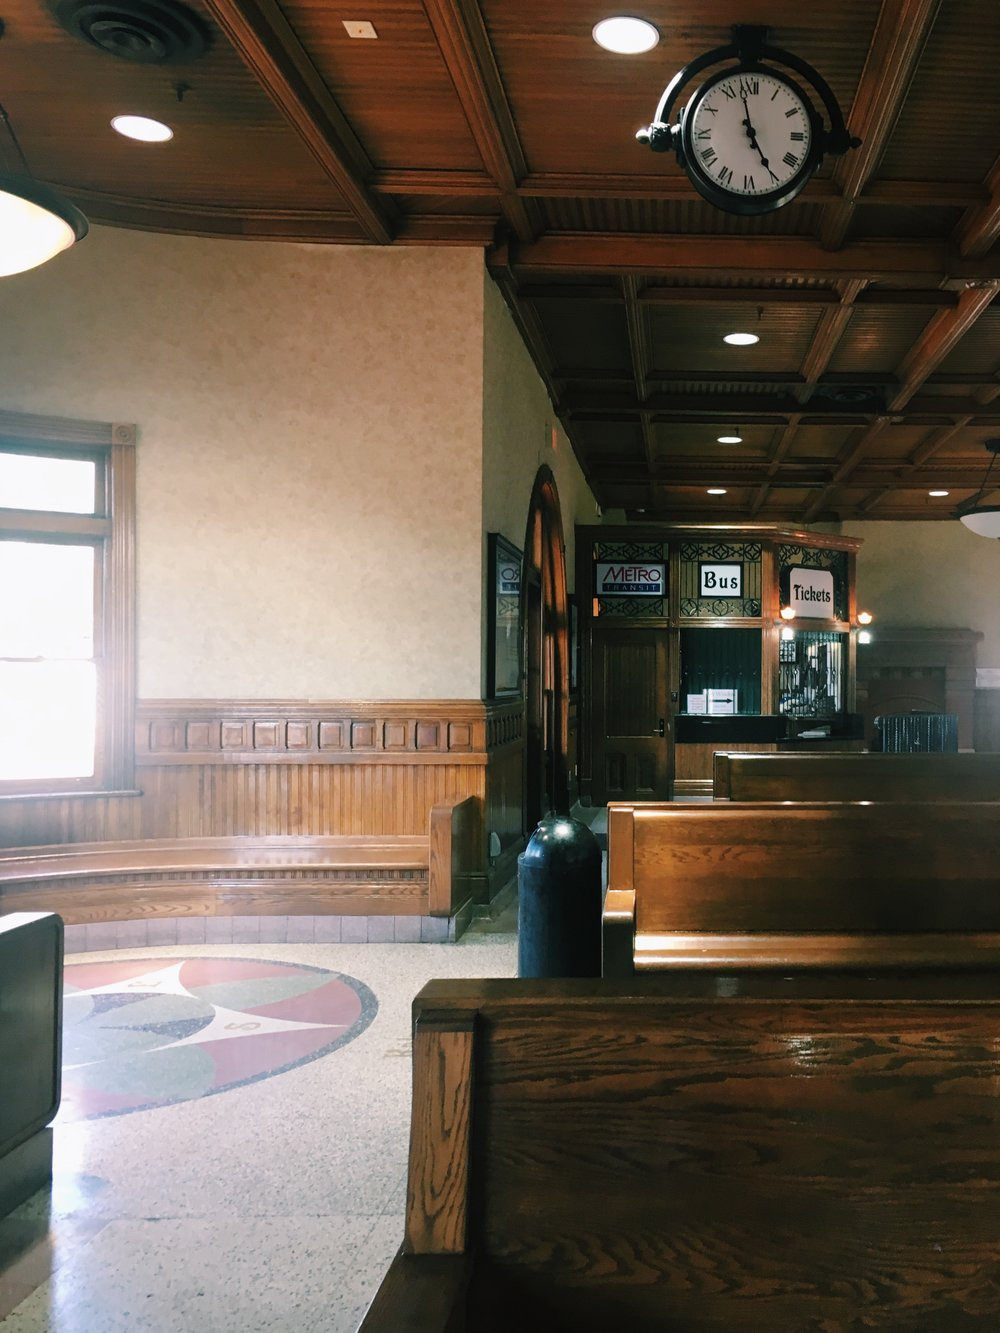 hardwood floor installation kalamazoo of bikes brews in kalamazoo summer by rail intended for the kalamazoo station was built in 1887 and features beautiful wooden benches a bubbling fountain outside and a fireplace inside for the cold michigan